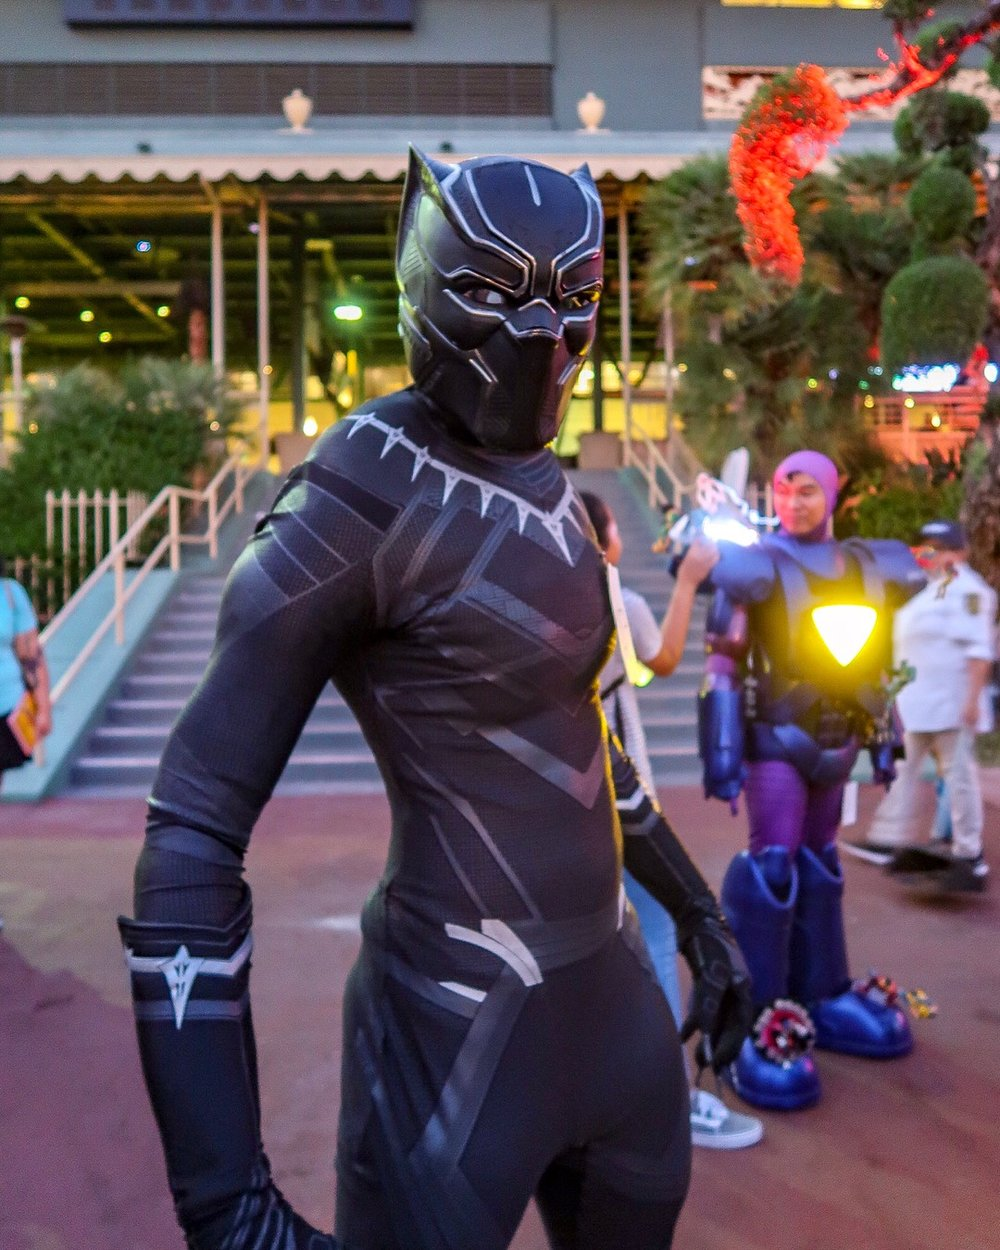 626-night-market-cosplay-contest-black-panther-2.JPG